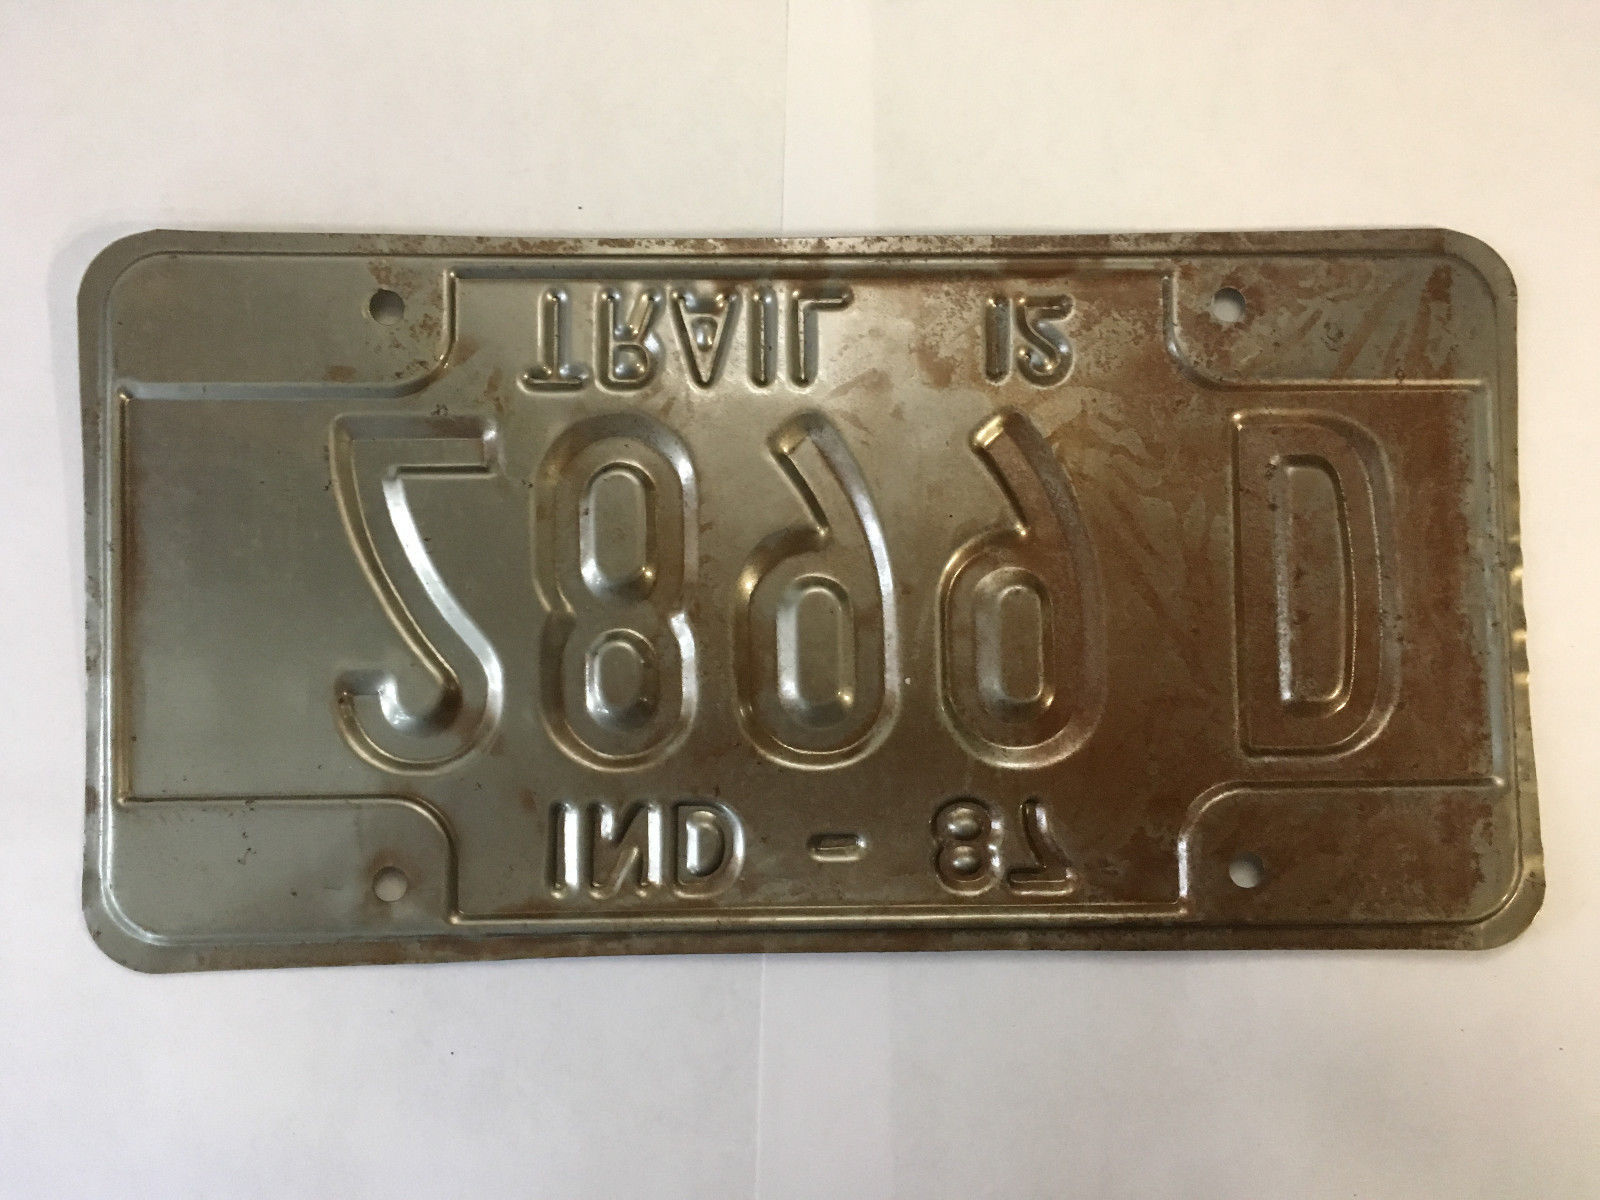 Vintage Indiana Trailer Metal License Plate 1987 2899D White Black image 6